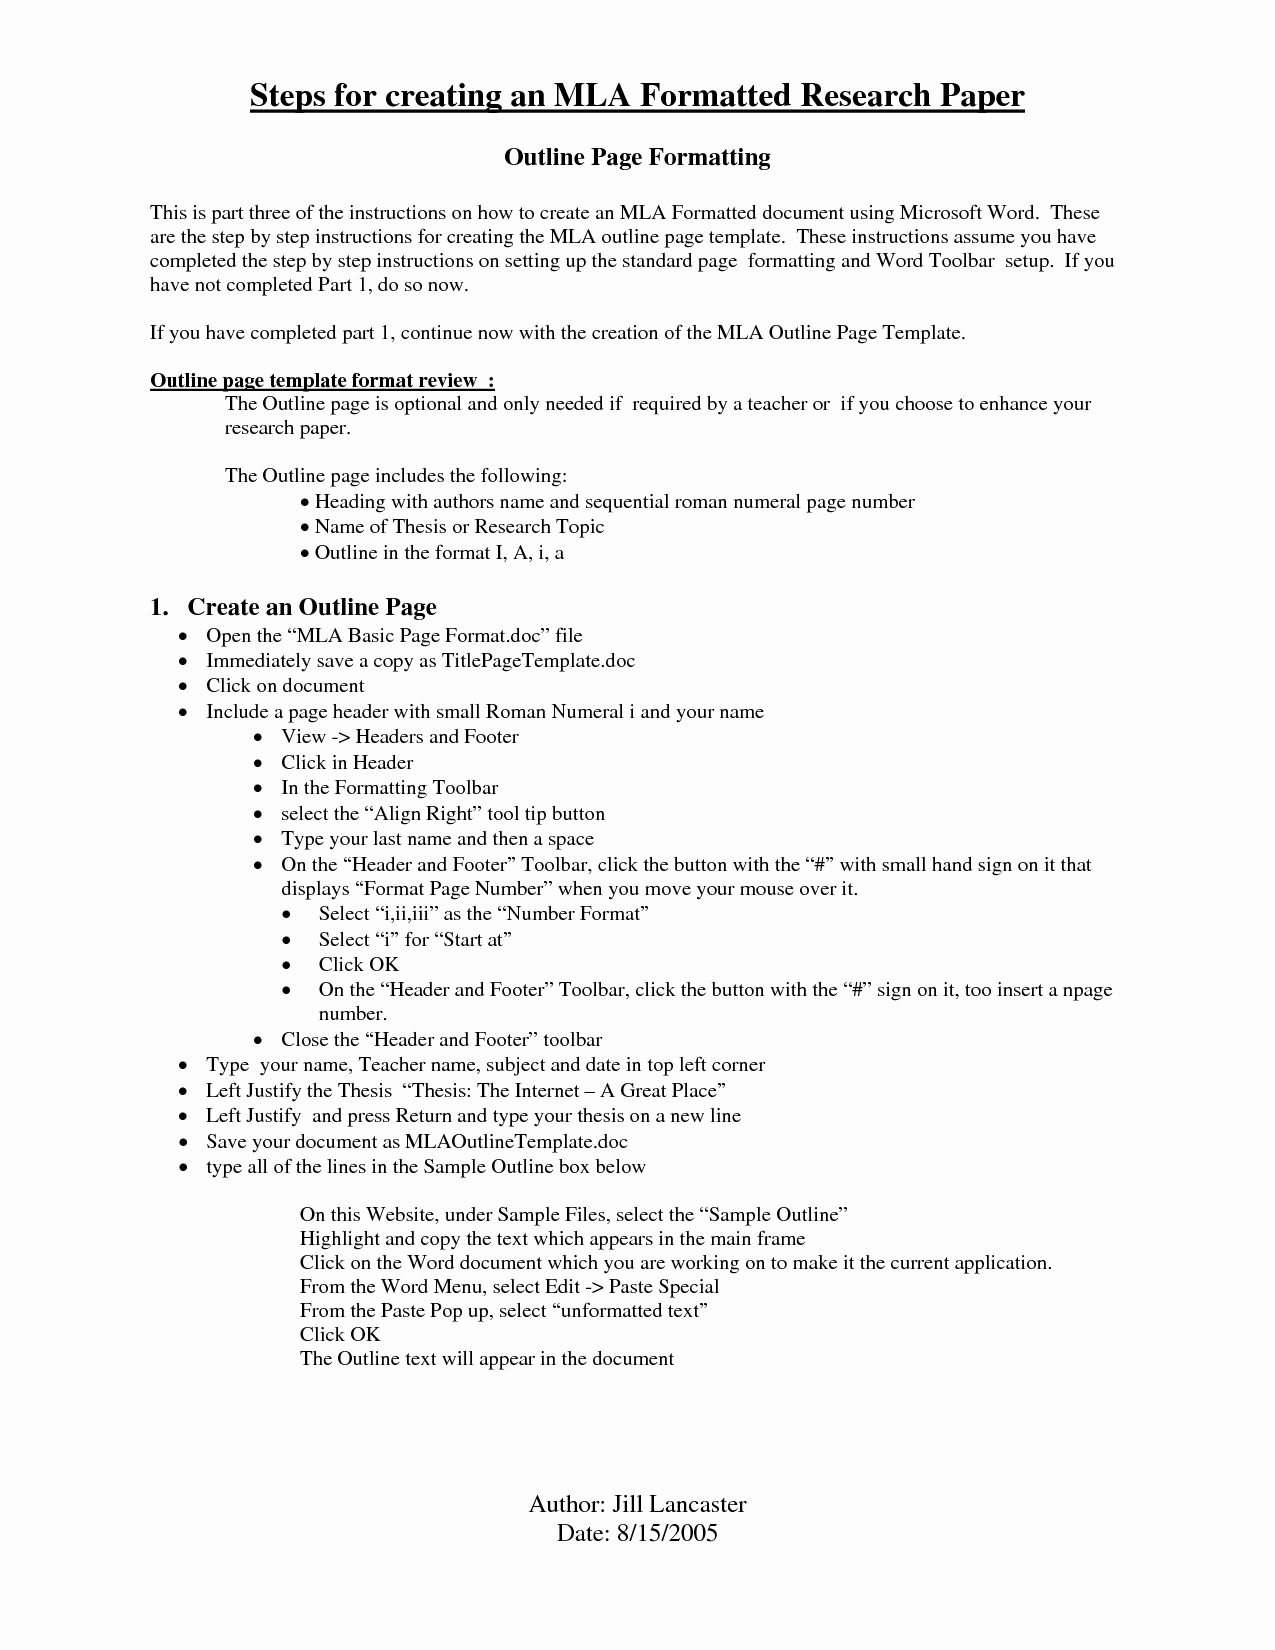 Mla formatted Research Paper Example Best Of Best S Of Mla College Research Paper Outline Mla